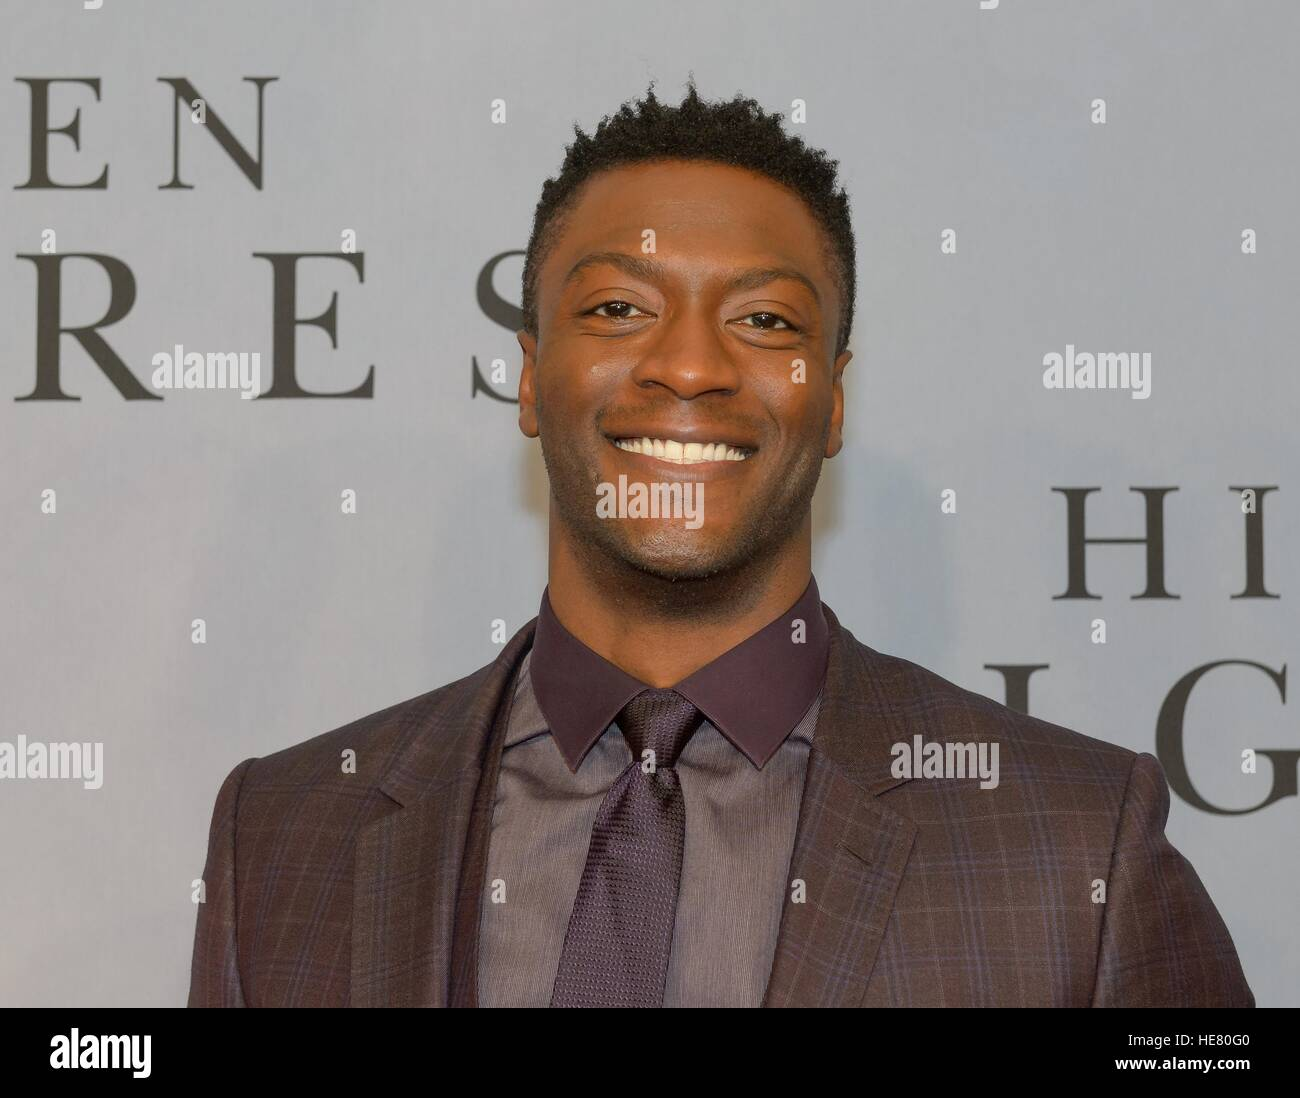 Actor Aldis Hodge walks the red carpet during the global celebration event for the film Hidden Figures at the SVA - Stock Image